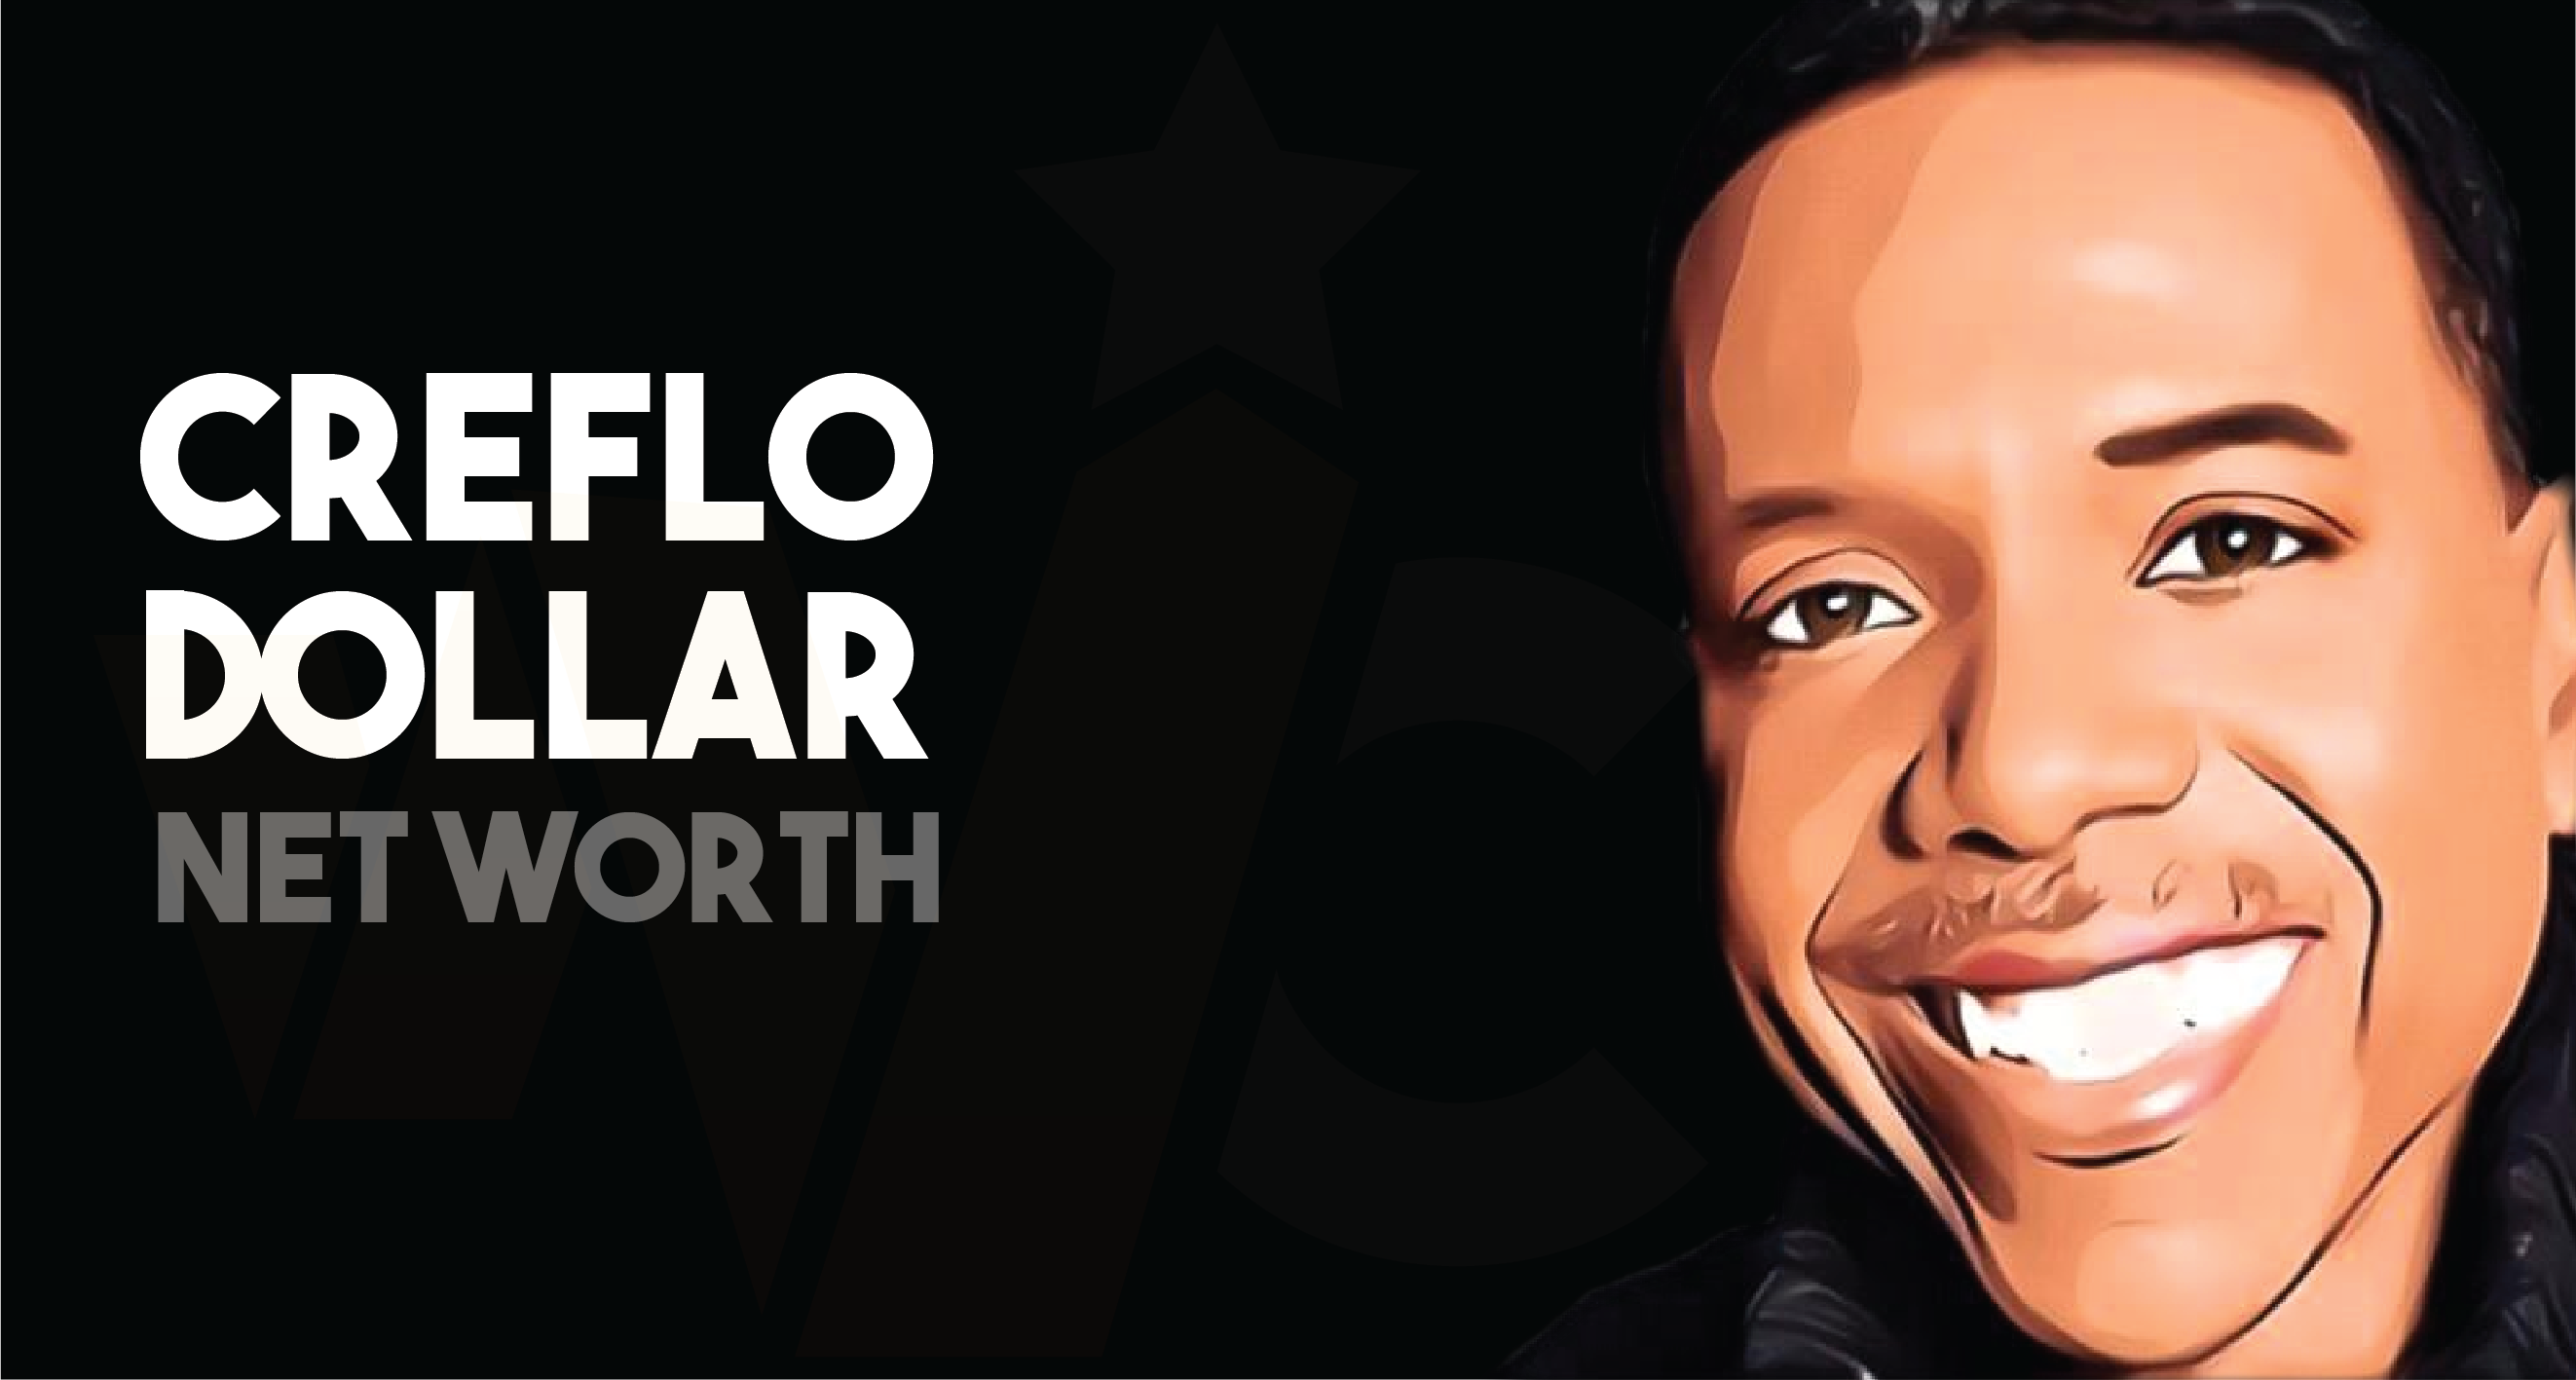 Creflo Dollar - Net worth